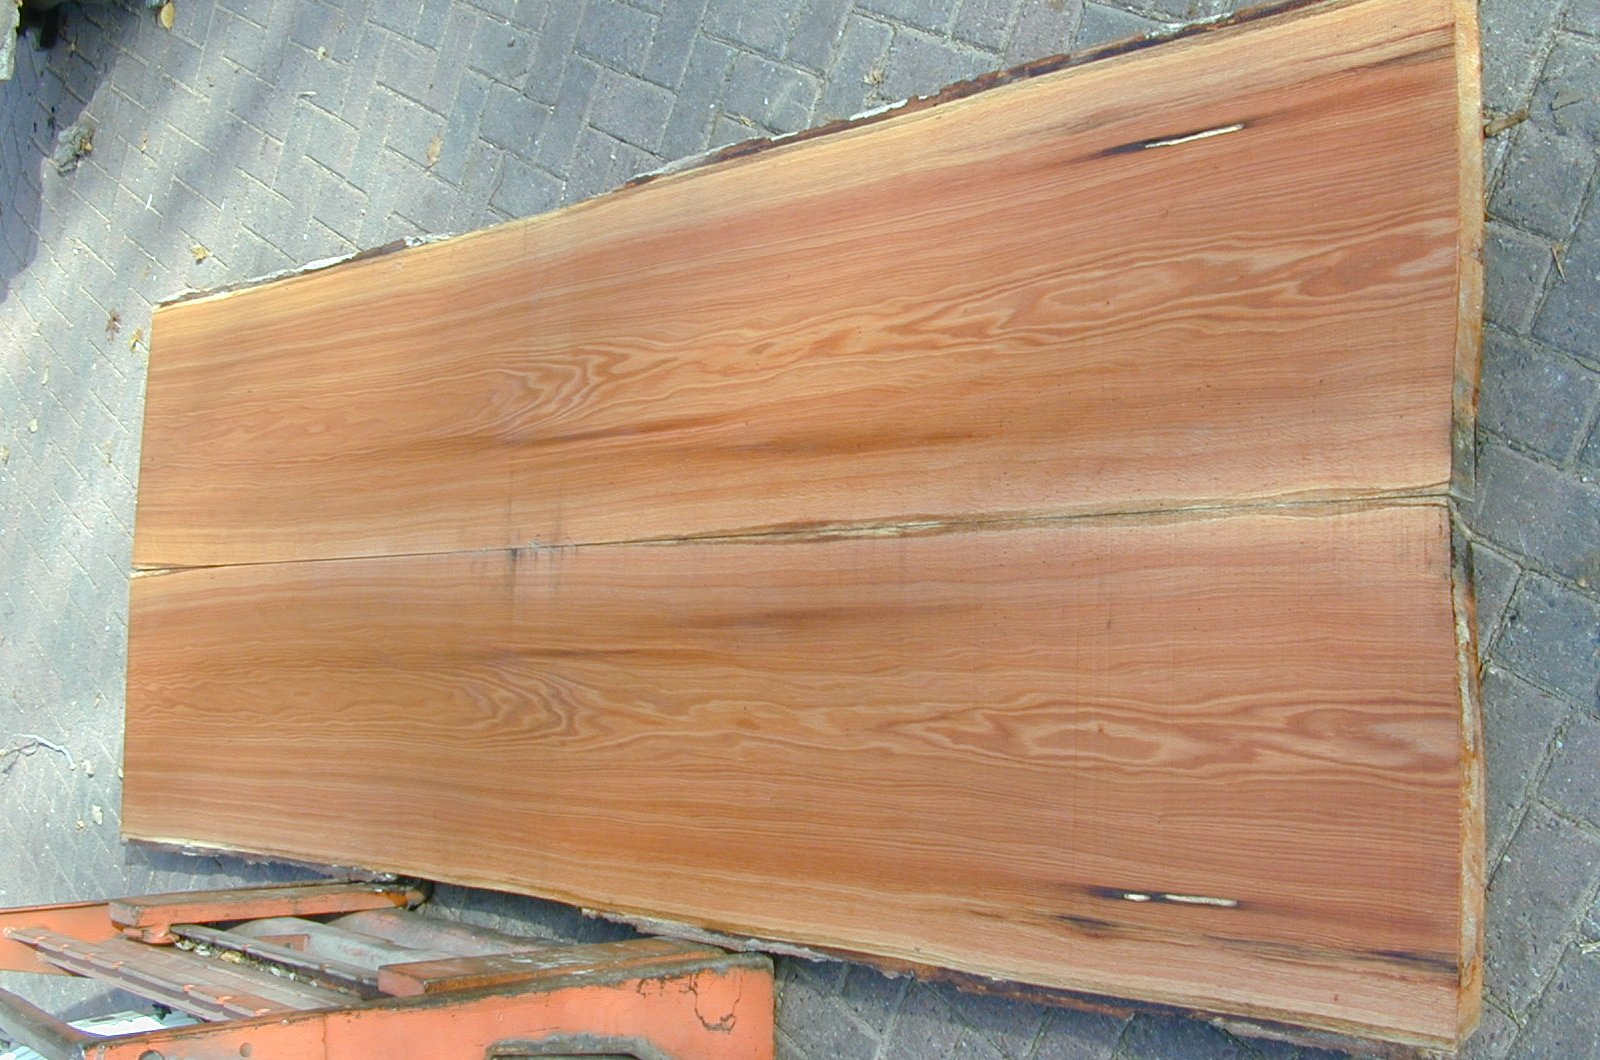 8 4 Bookmatched Red Oak Live Edge Table Top Slabs 1367 Ab